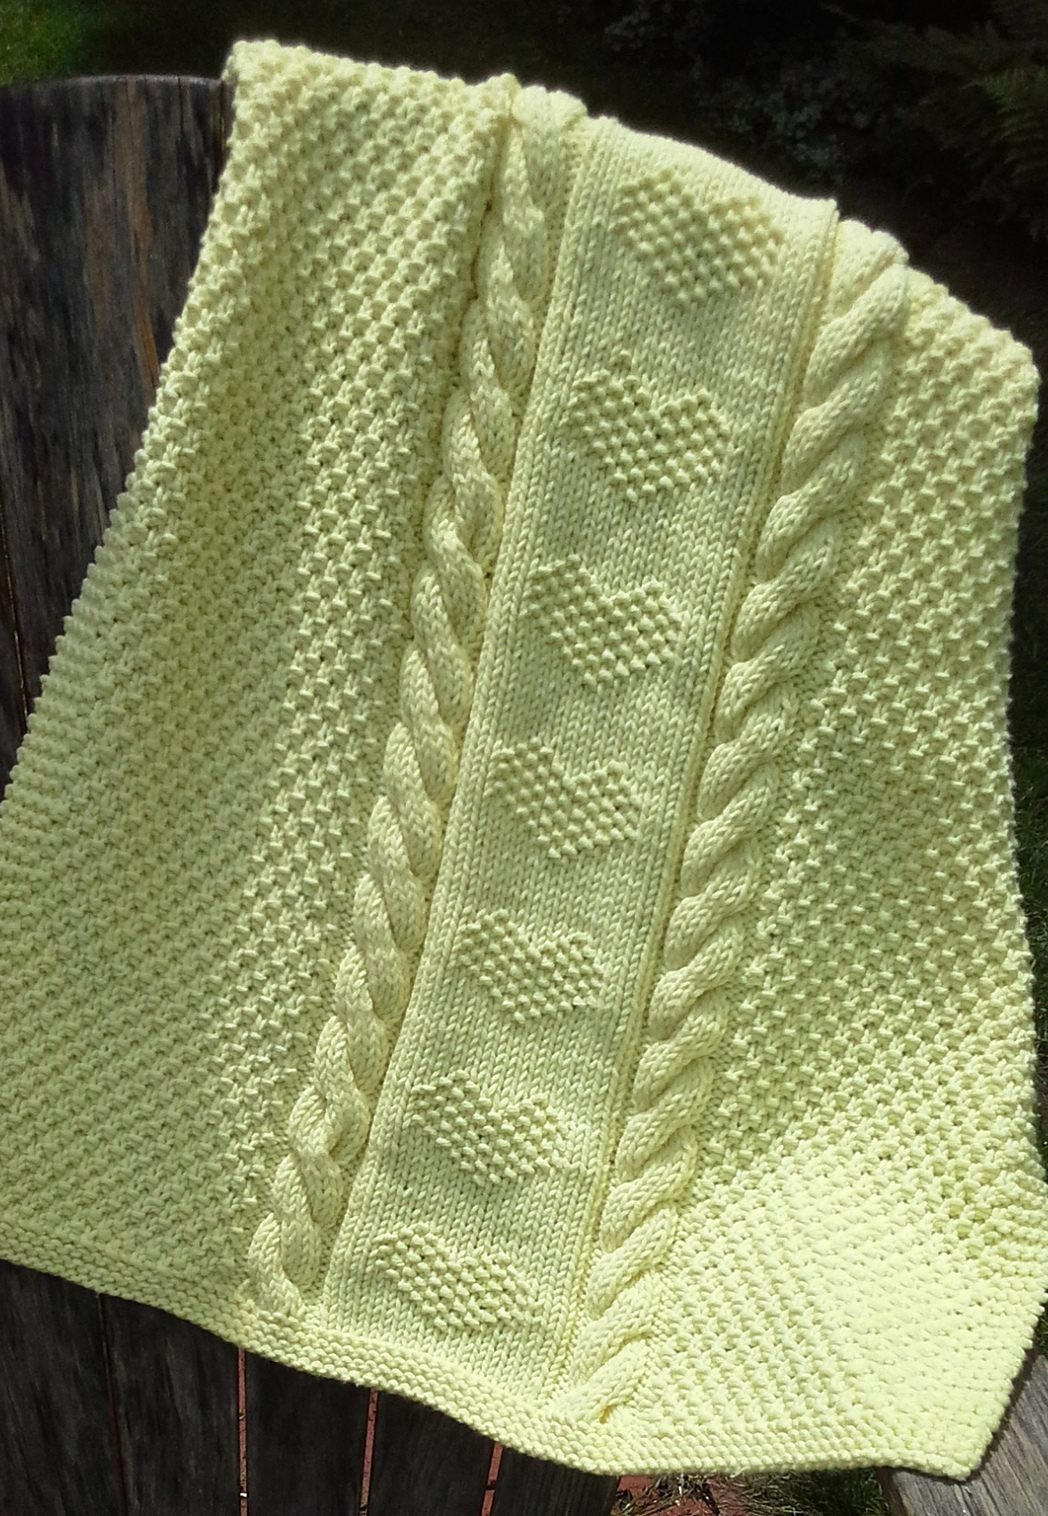 Heart Baby Blanket New Quick Baby Blanket Knitting Patterns Of Adorable 45 Pictures Heart Baby Blanket